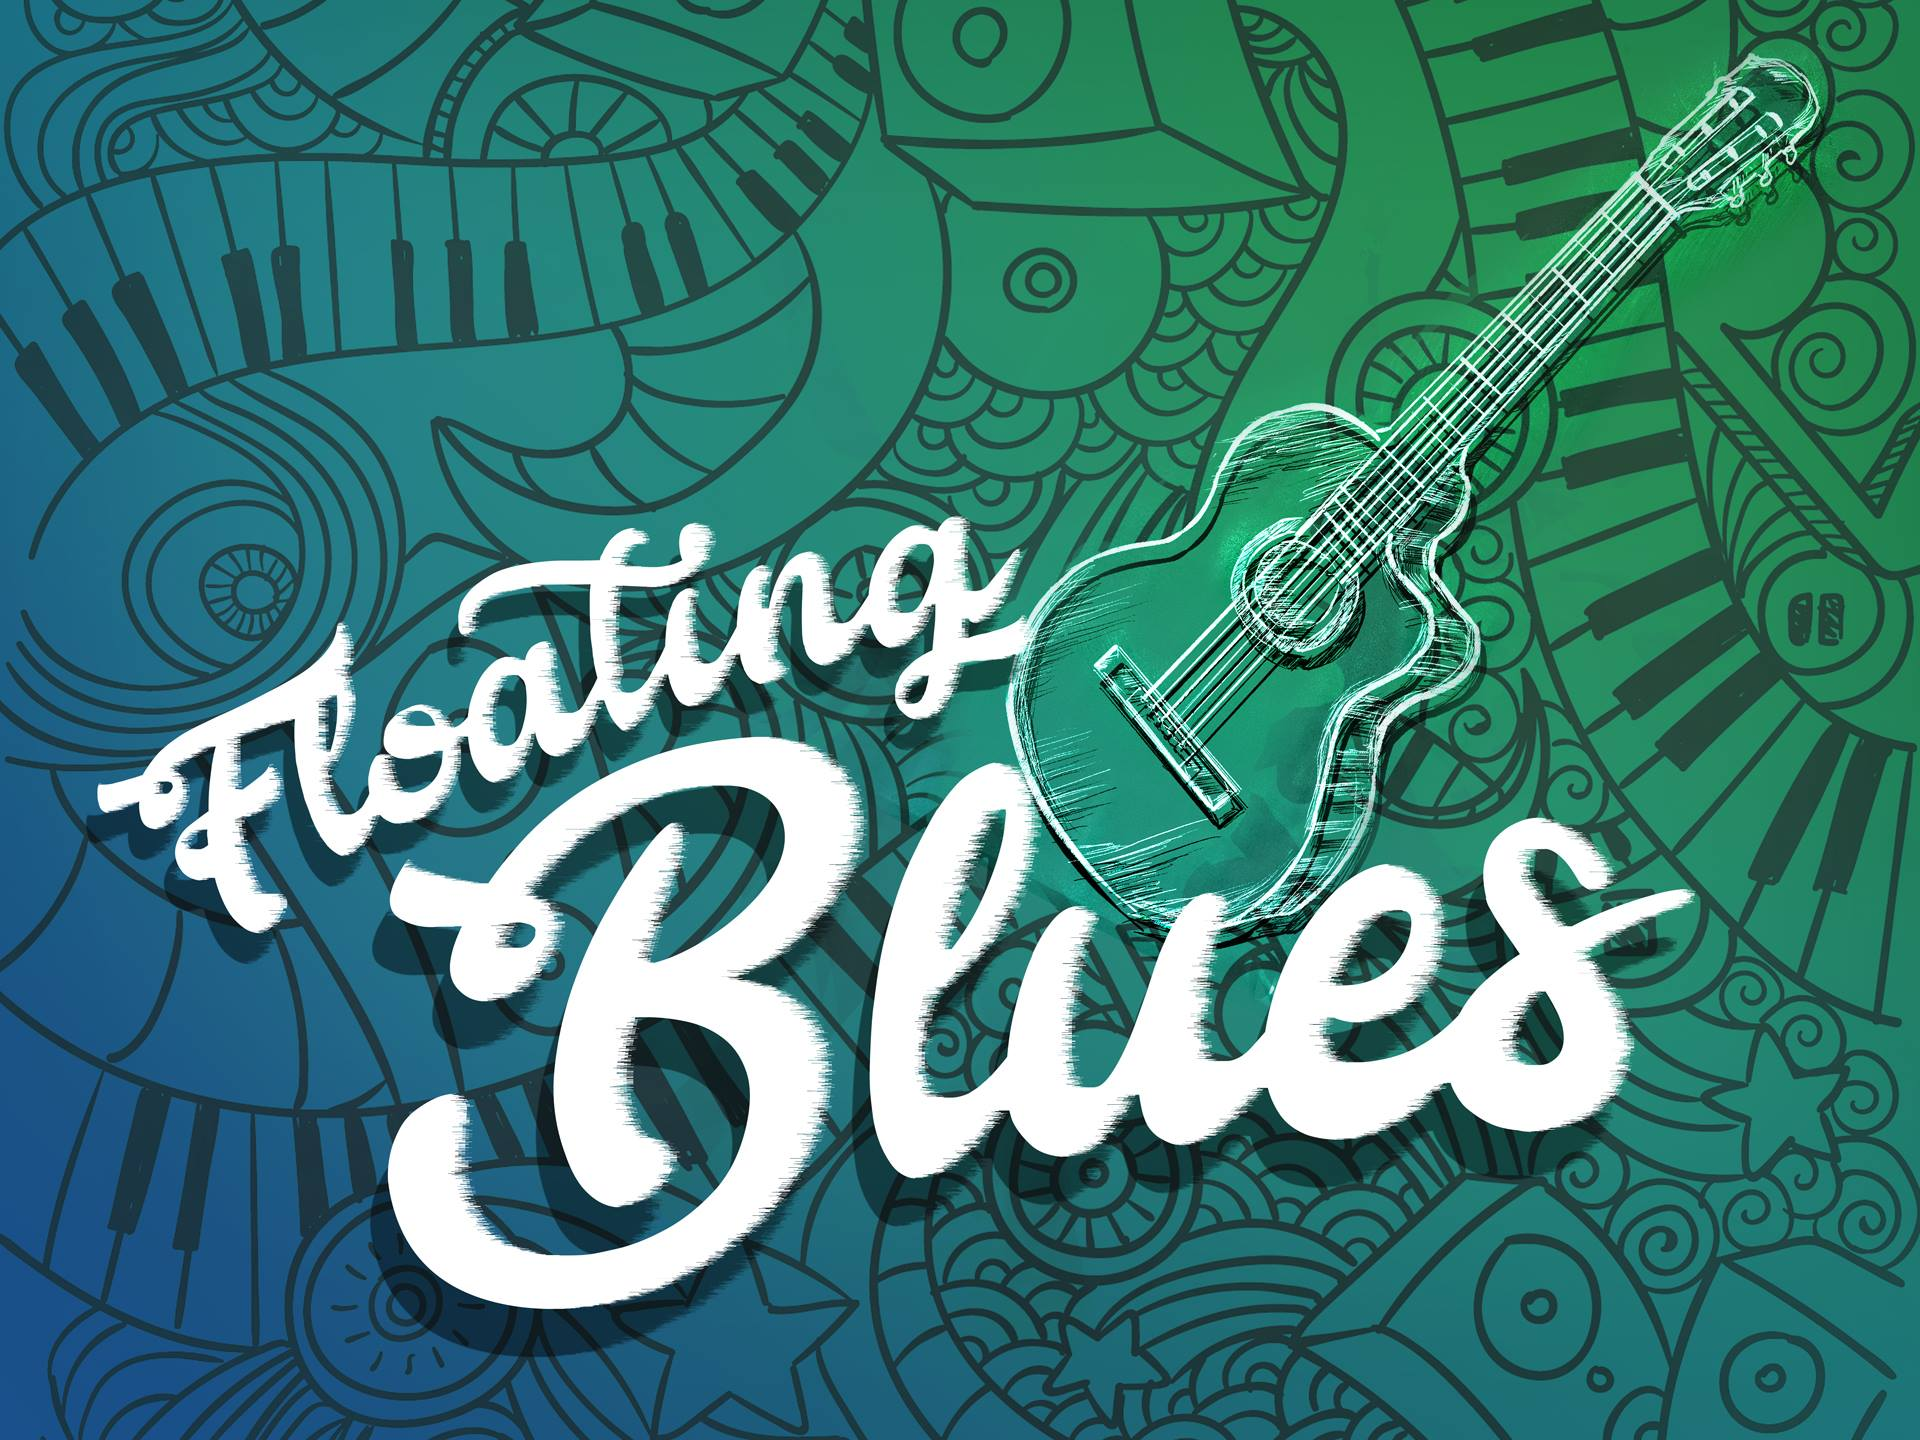 Floating Blues vol.2. - my z delty - koncert on-line